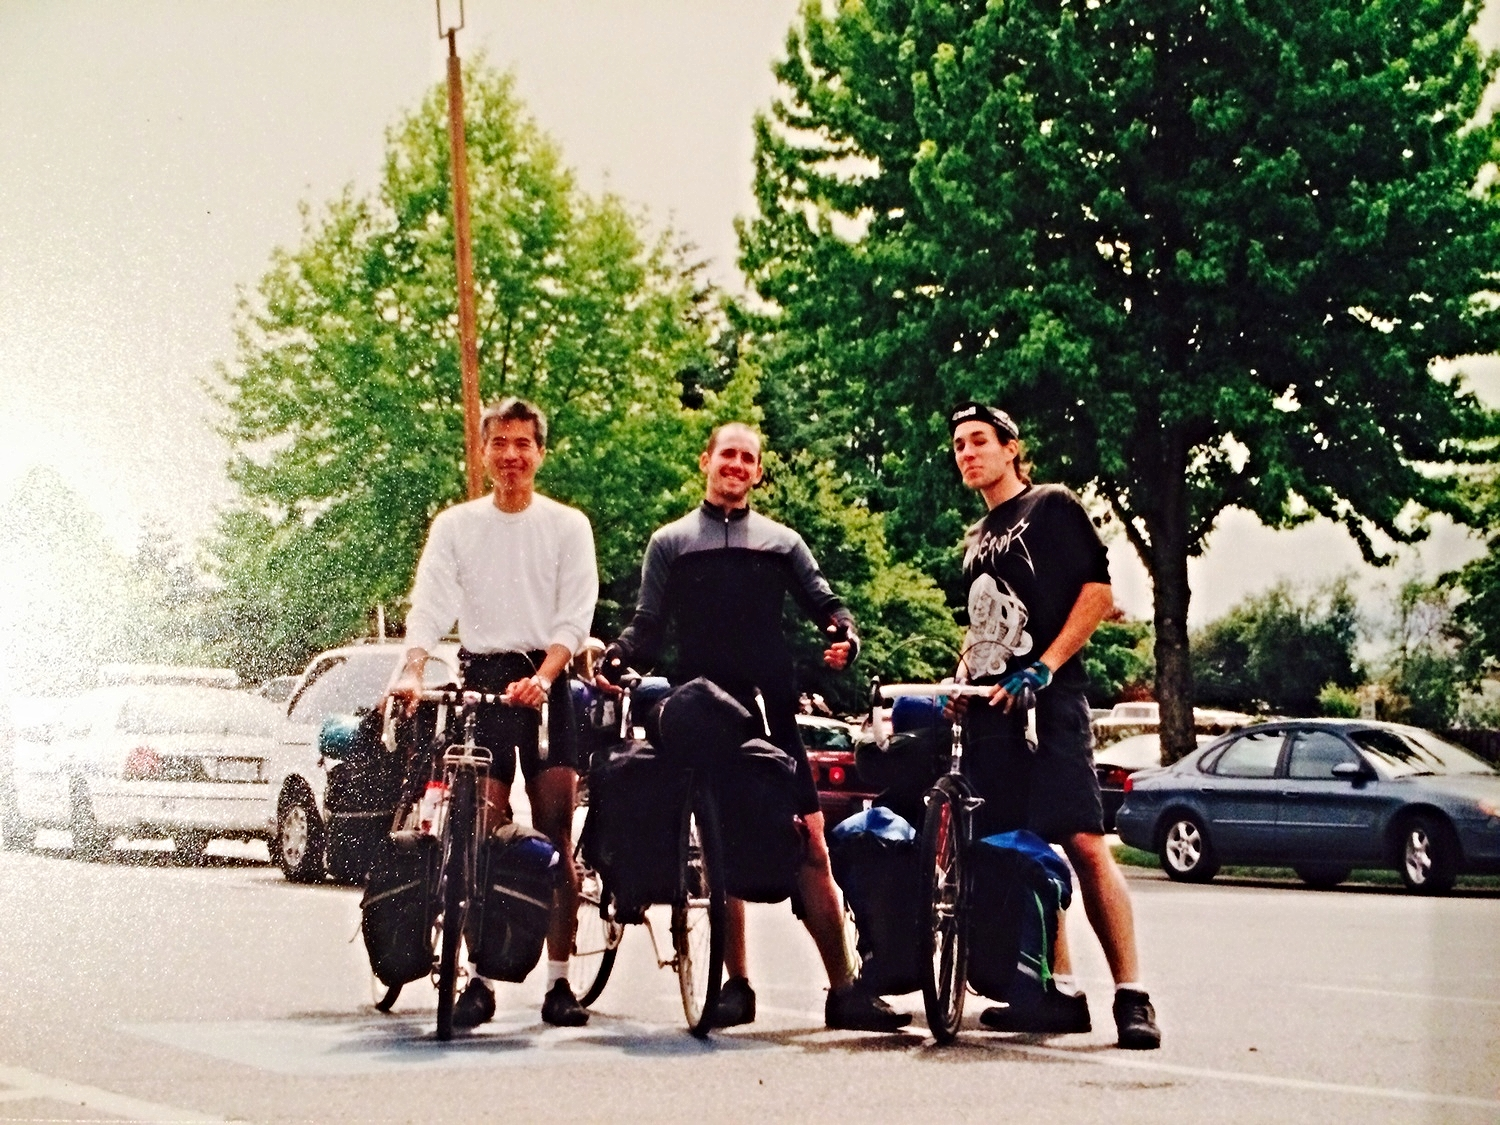 L to R - Chen, Will, David (me).  Chen came along for the first two weeks and left Will and I to make it the rest of the way home. This was taken when we got off the ferry atVancouver Island. Still can't believe I carried so much stuff, but somehow Ijust go use to pushing around a 50 pound bike.